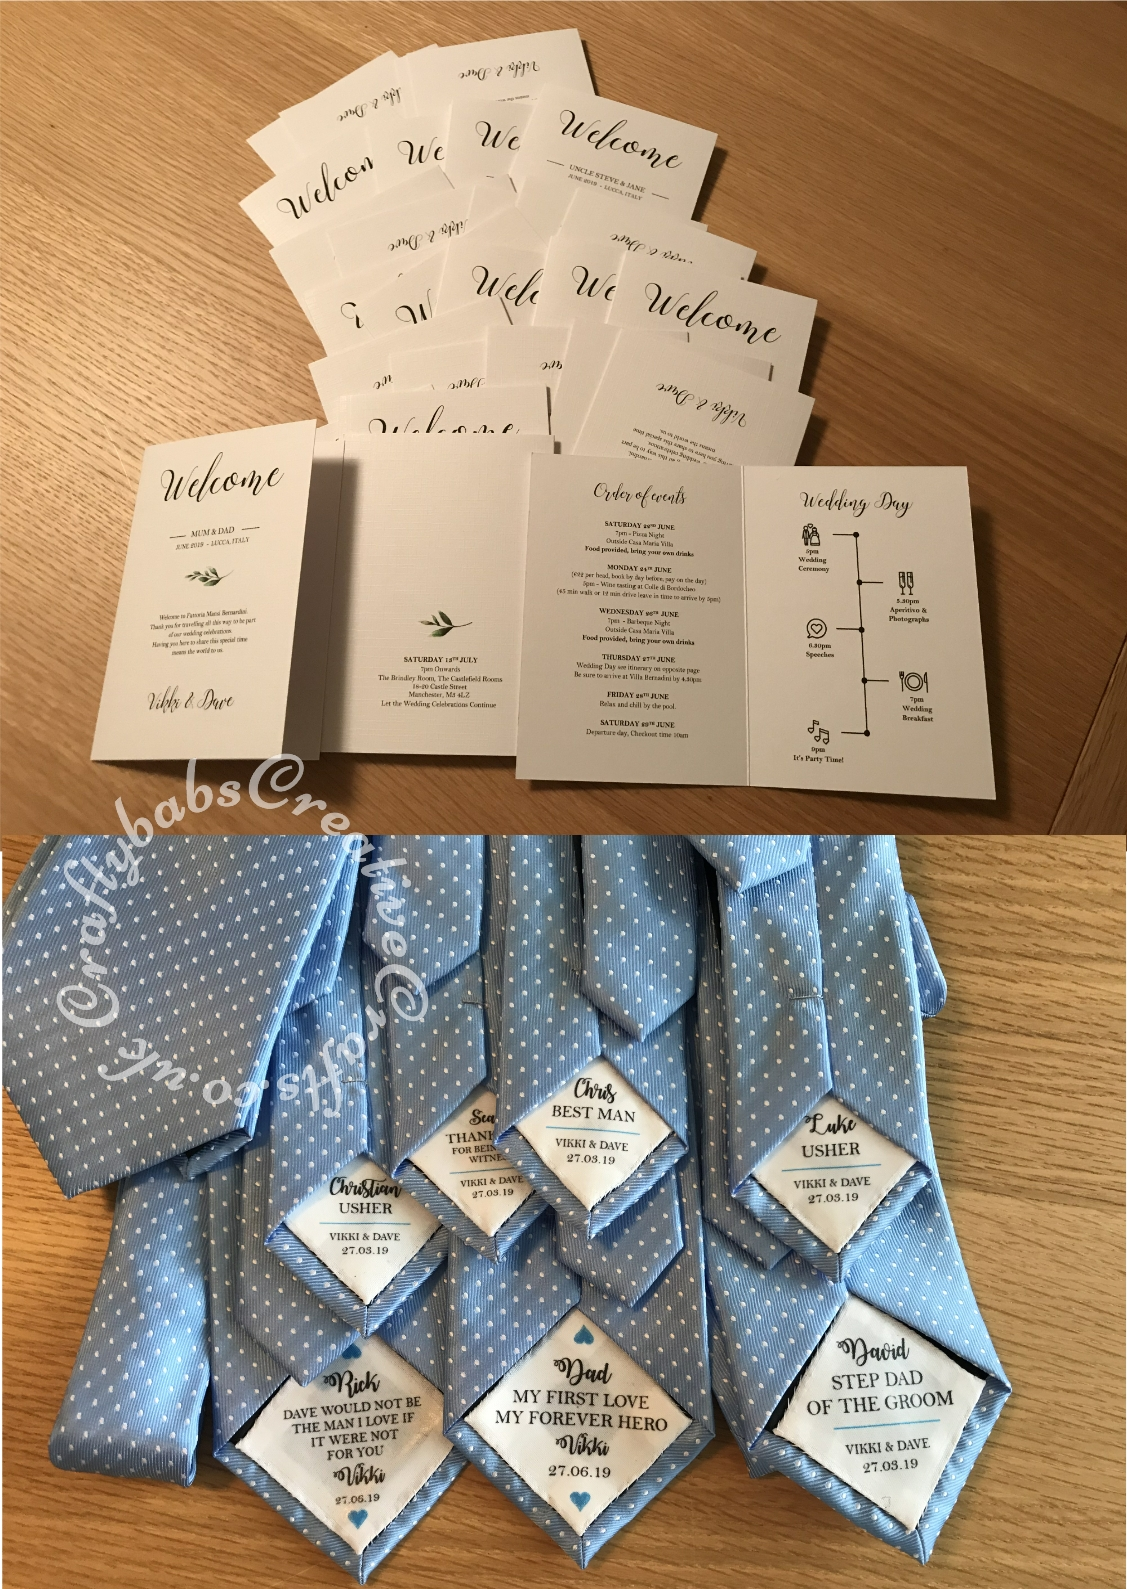 Wedding itinerary created in Word then printed onto linen card stock. Special men's tie messages printed onto T shirt transfer paper, ironed onto fabric patches then stitched inside ties. - craftybabscreativecrafts.co.uk